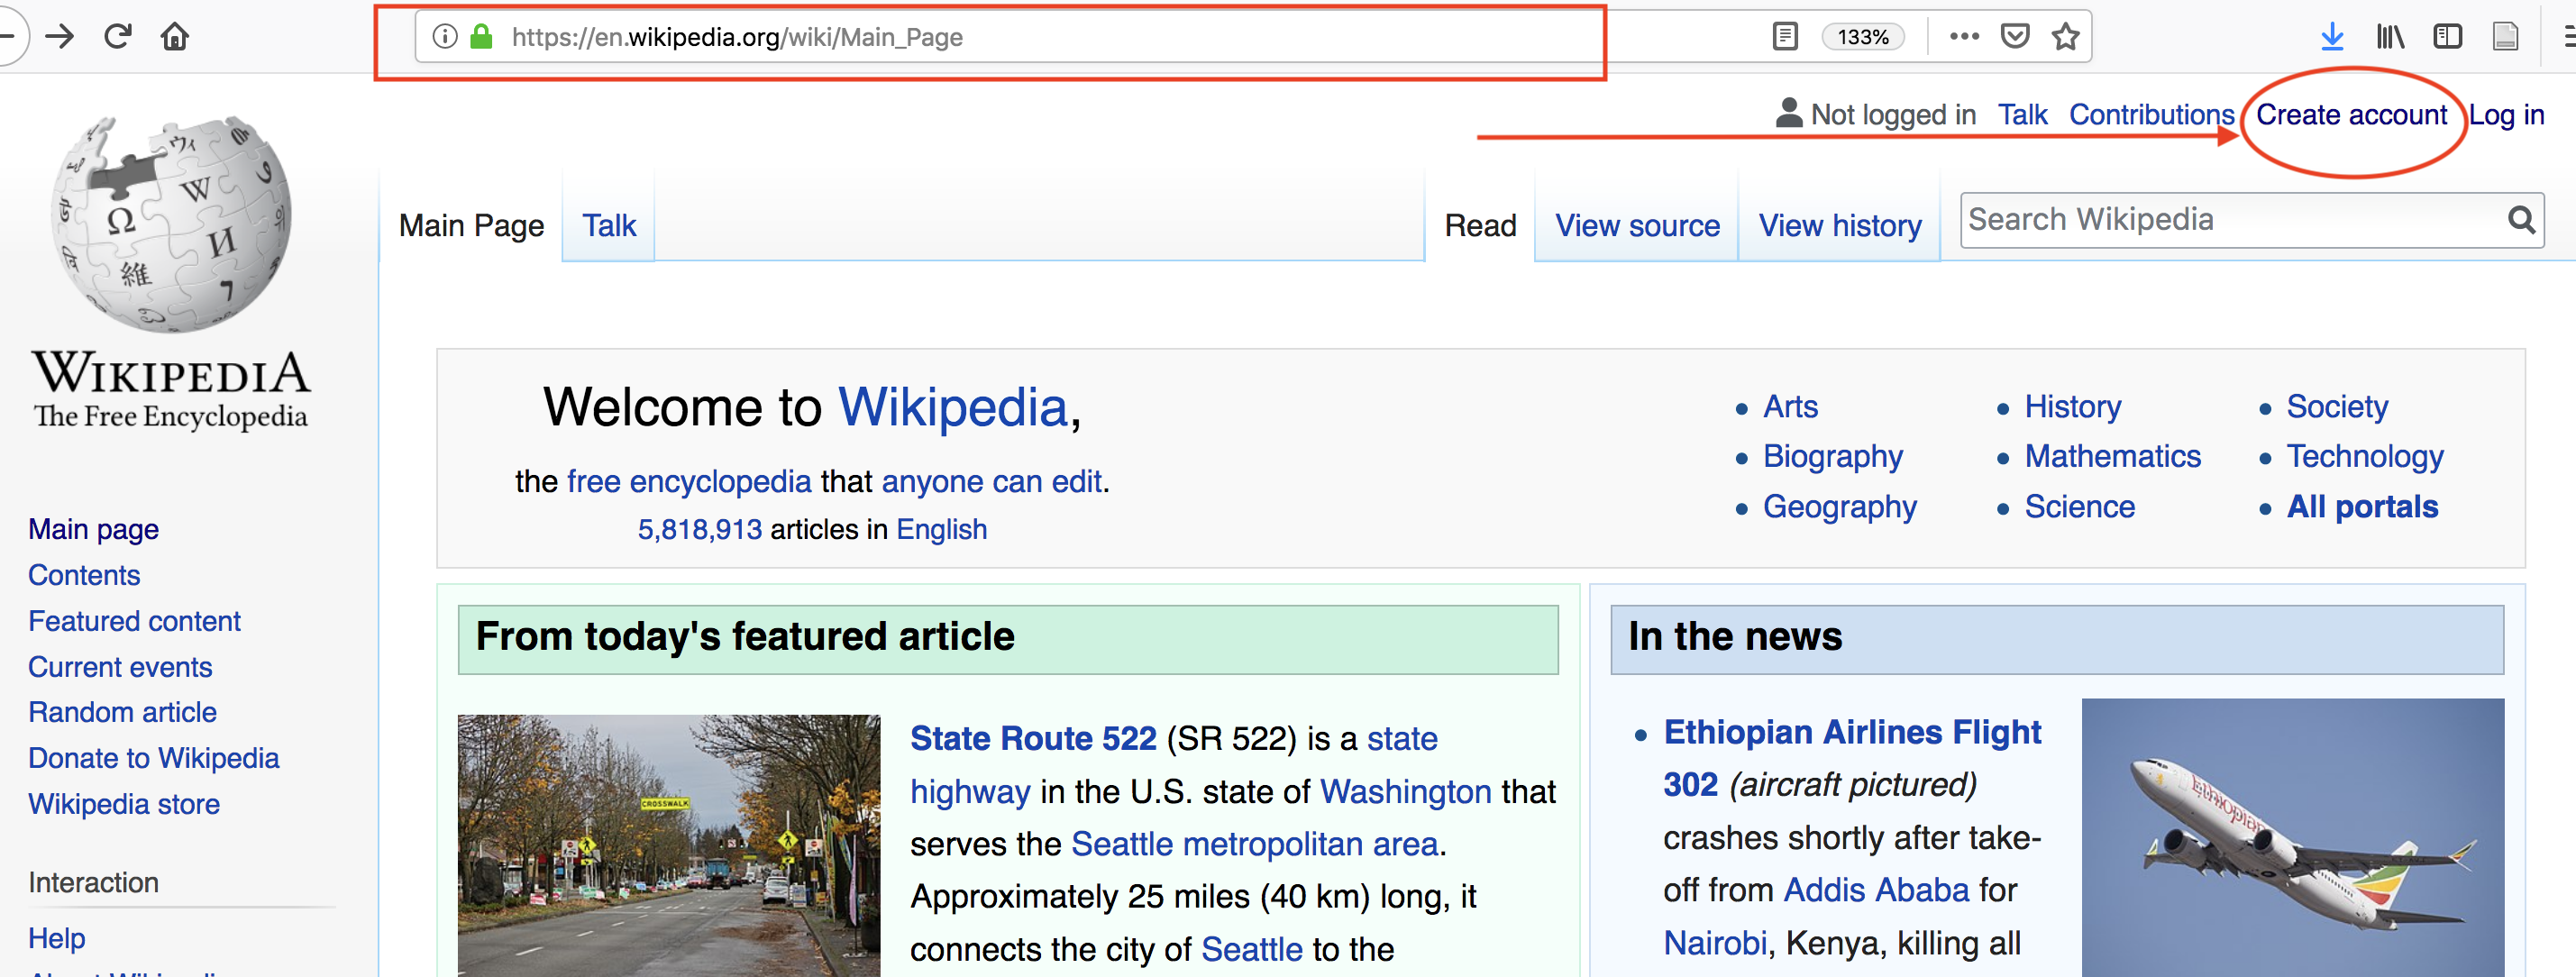 link to create an account in wikipedia